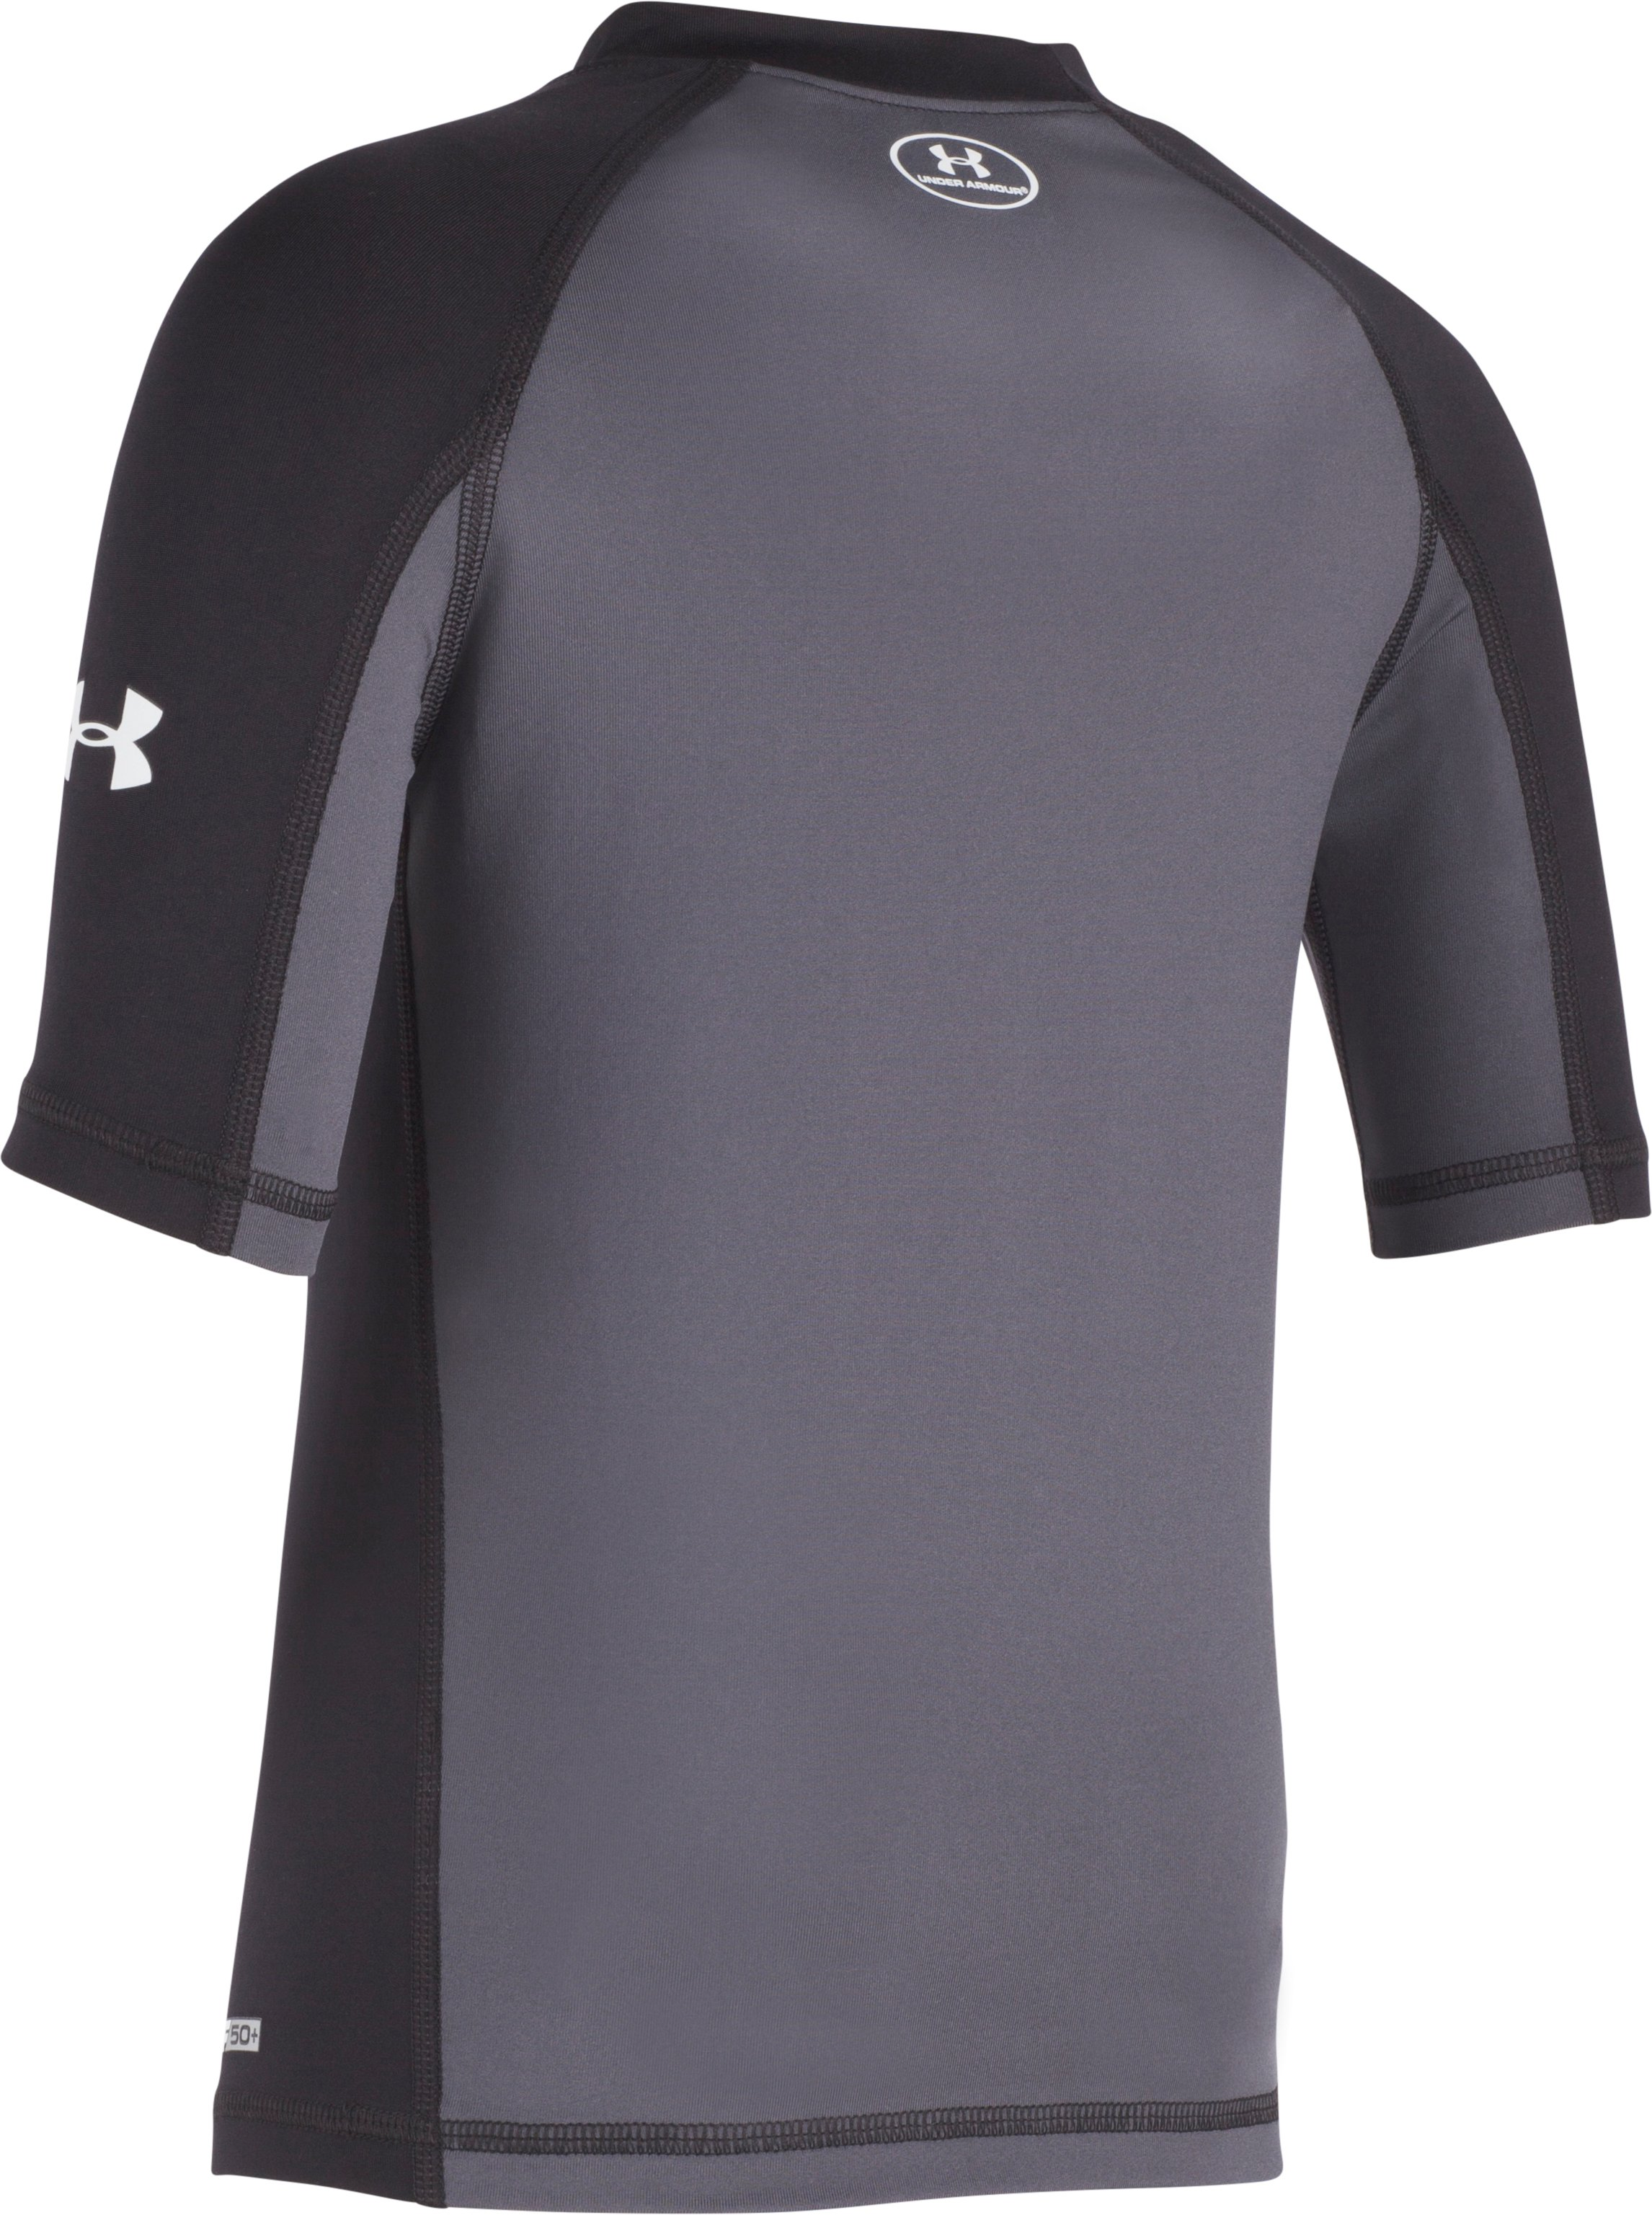 Boys' Pre-School UA Compression Rashguard Short Sleeve Shirt 2 Colors $19.99